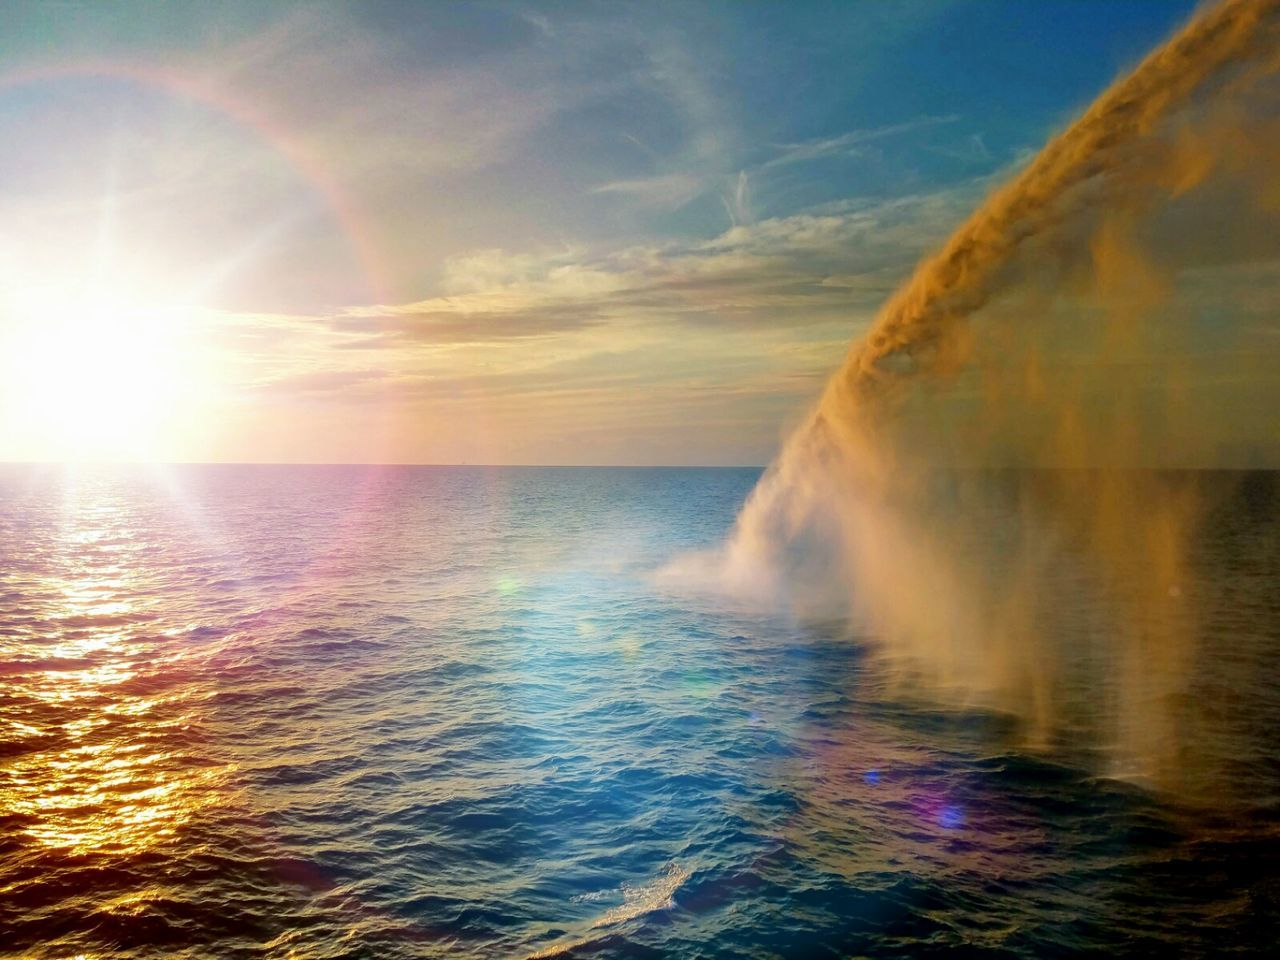 sea, water, horizon over water, nature, beauty in nature, scenics, sunset, sky, sunlight, no people, outdoors, motion, day